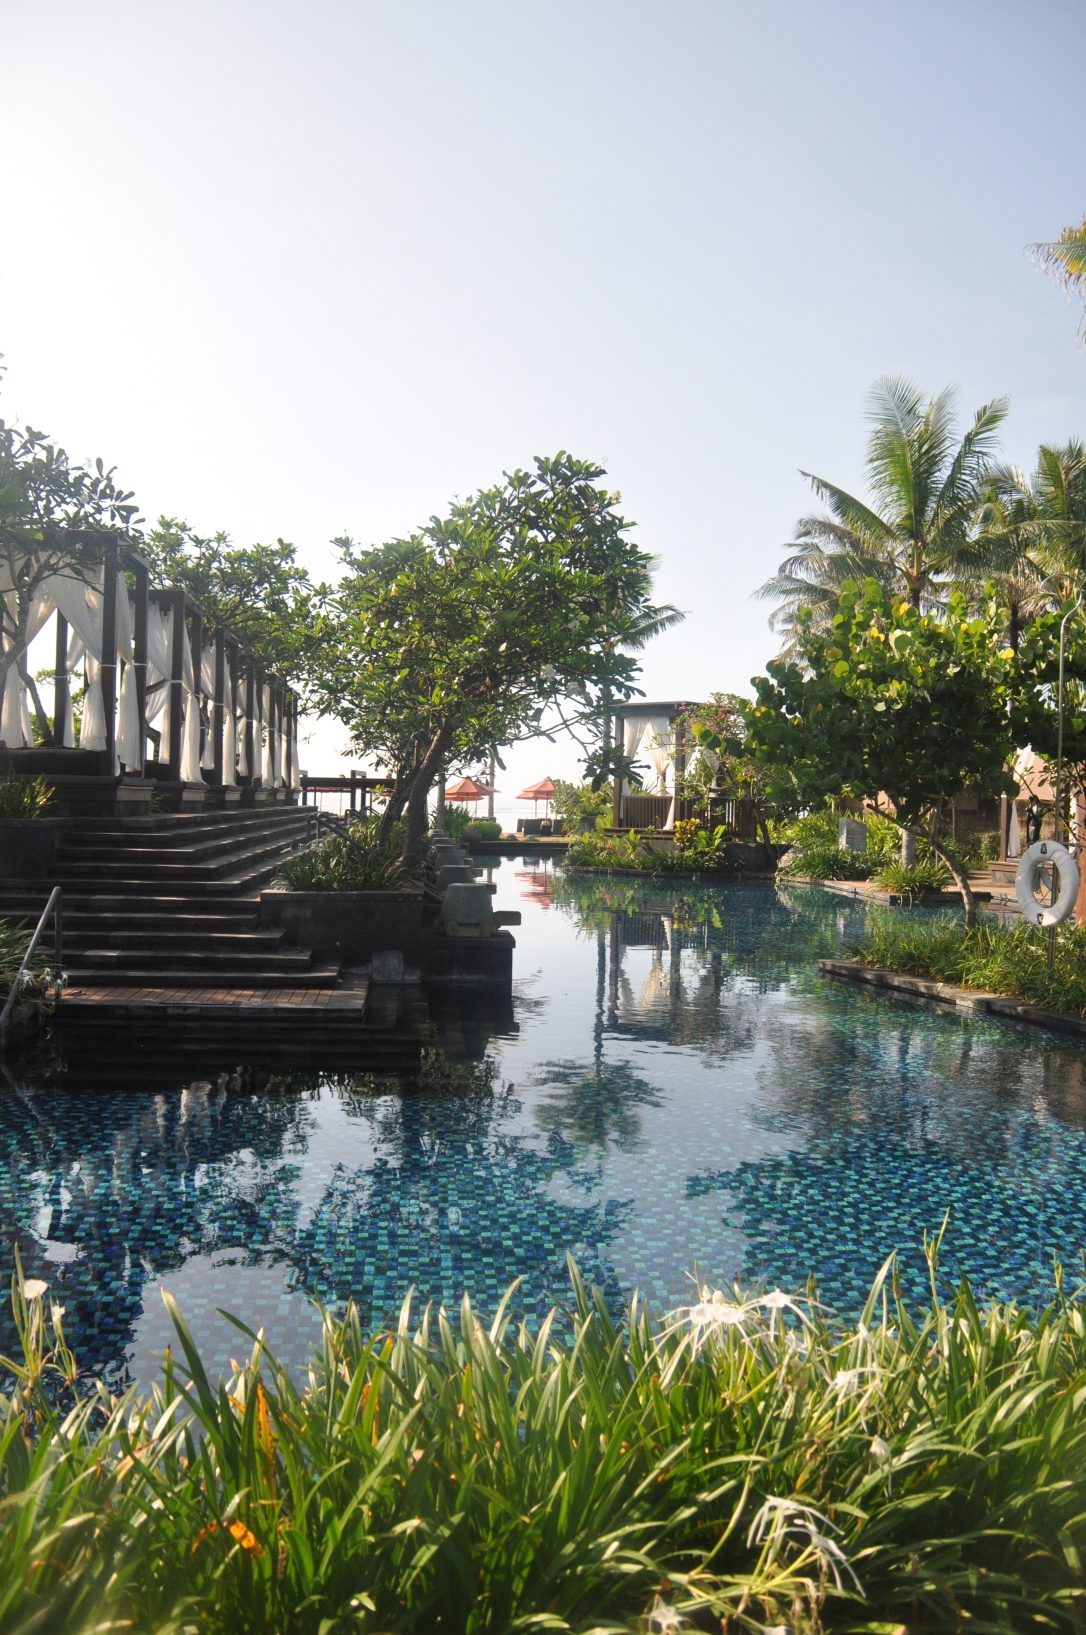 Part of the pool that extended around the resort.